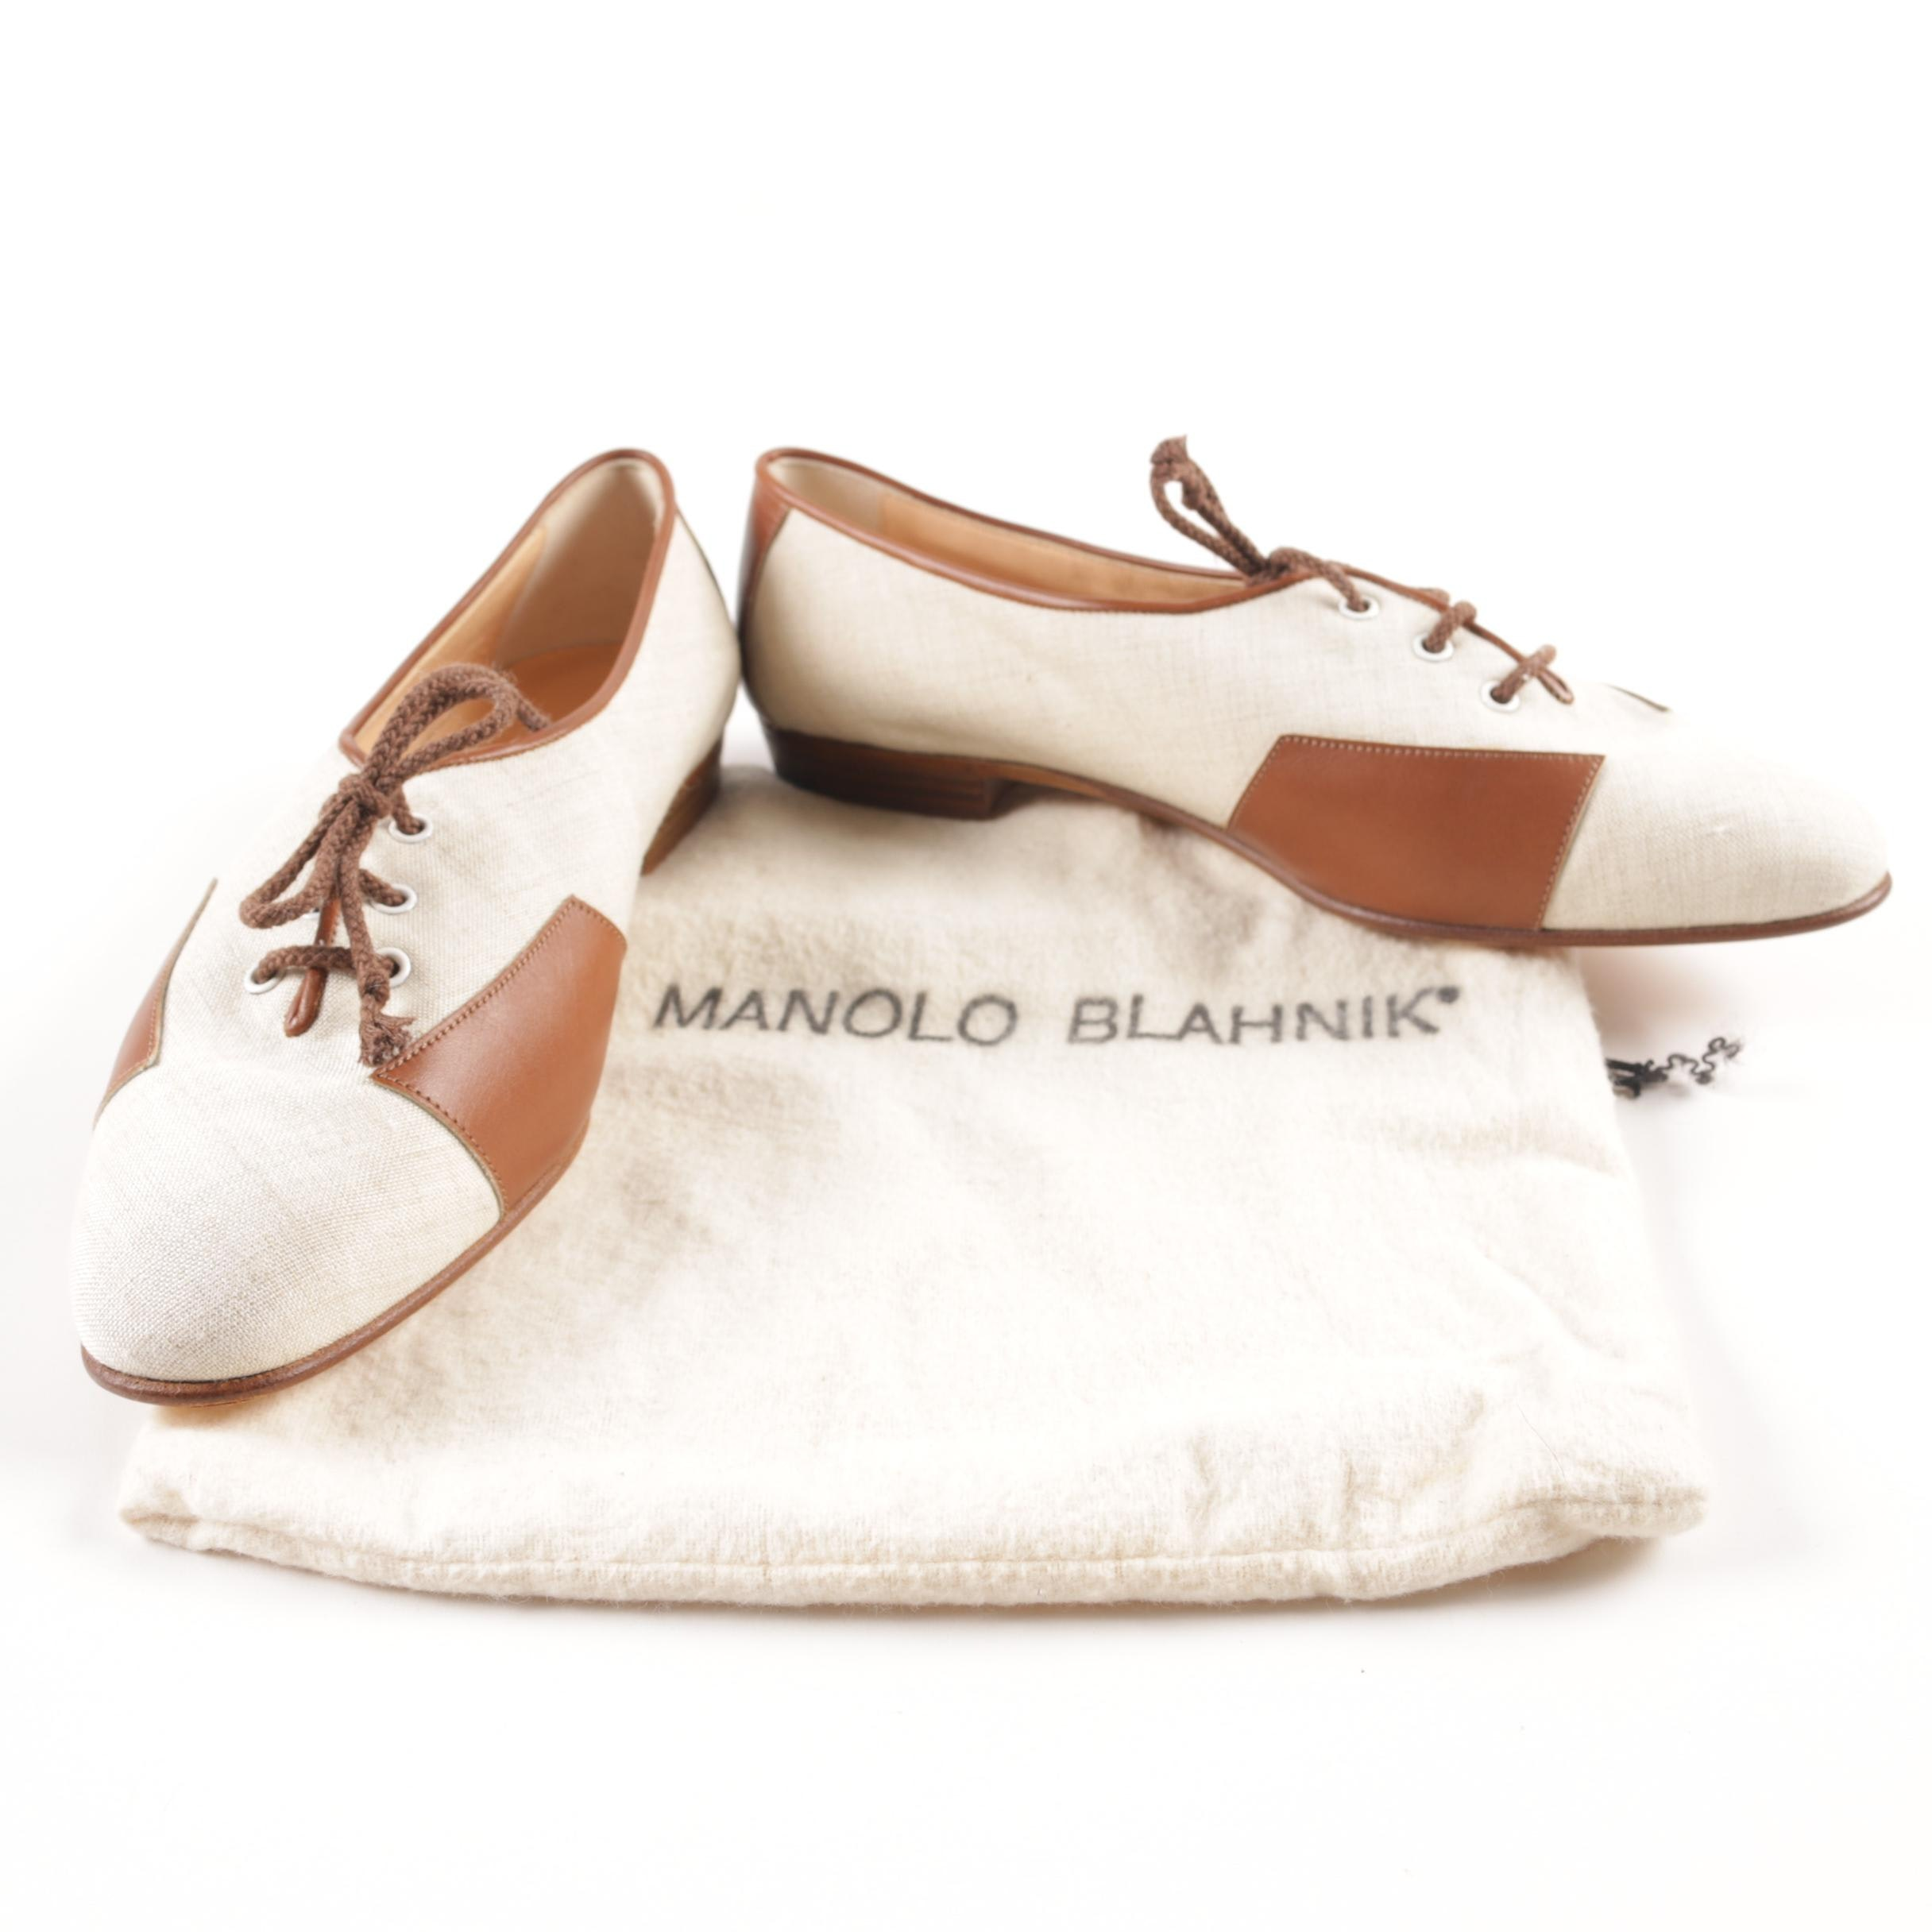 Manolo Blahnik Canvas and Leather Spectator Shoes